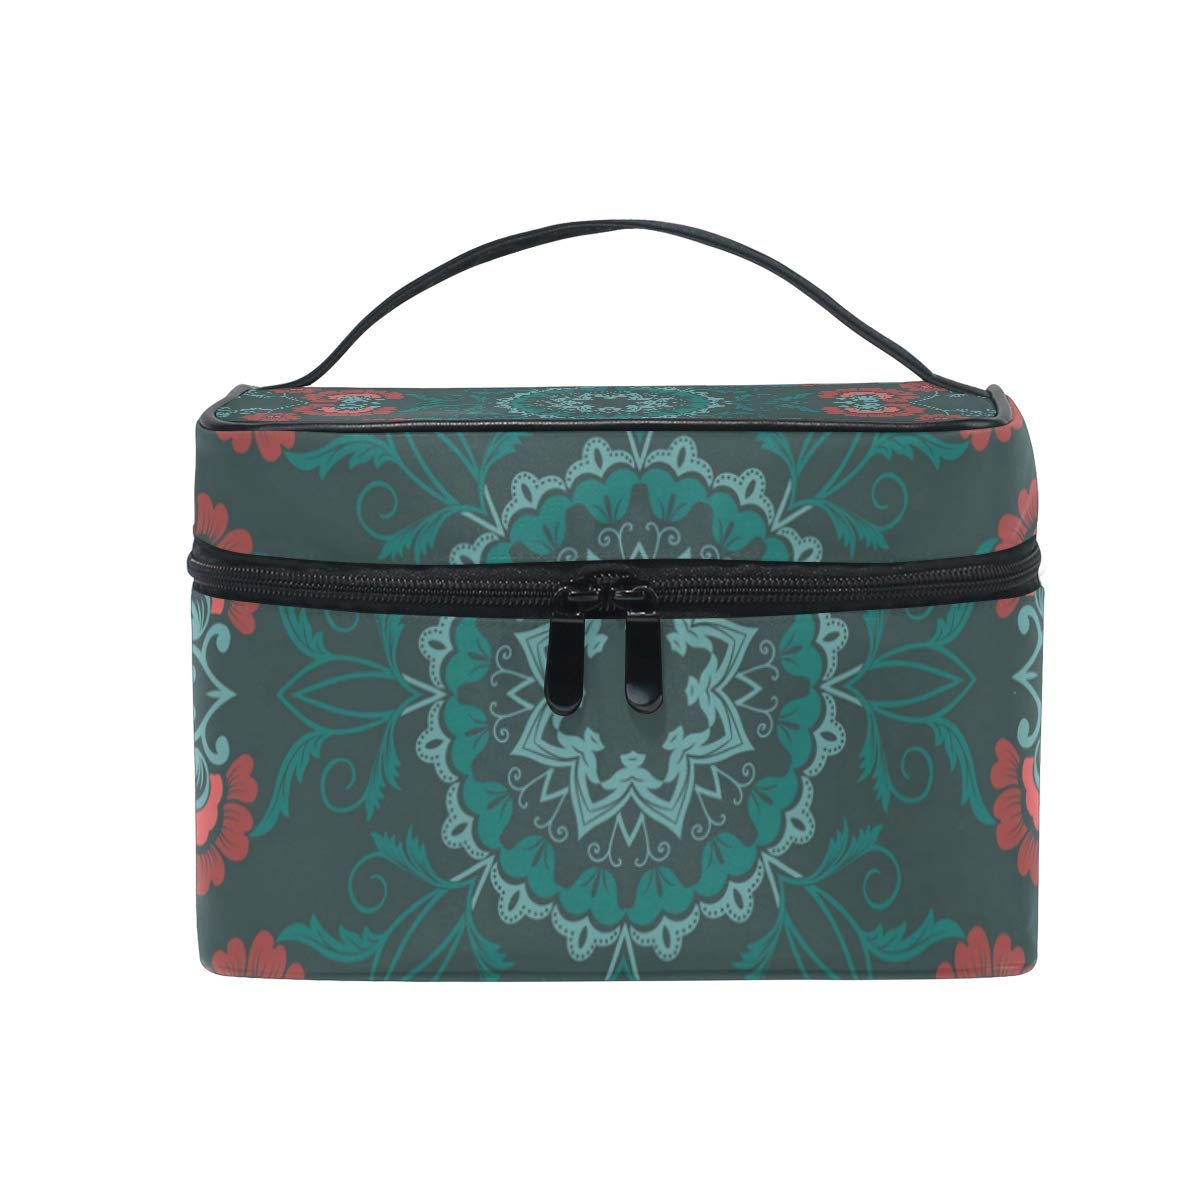 Makeup Bag Vintage Bohemian Floral Embroidery Portable Large Cosmetic Toiletry Brush Bag Travel Train Case Organizer Box Pouch for Girls Women